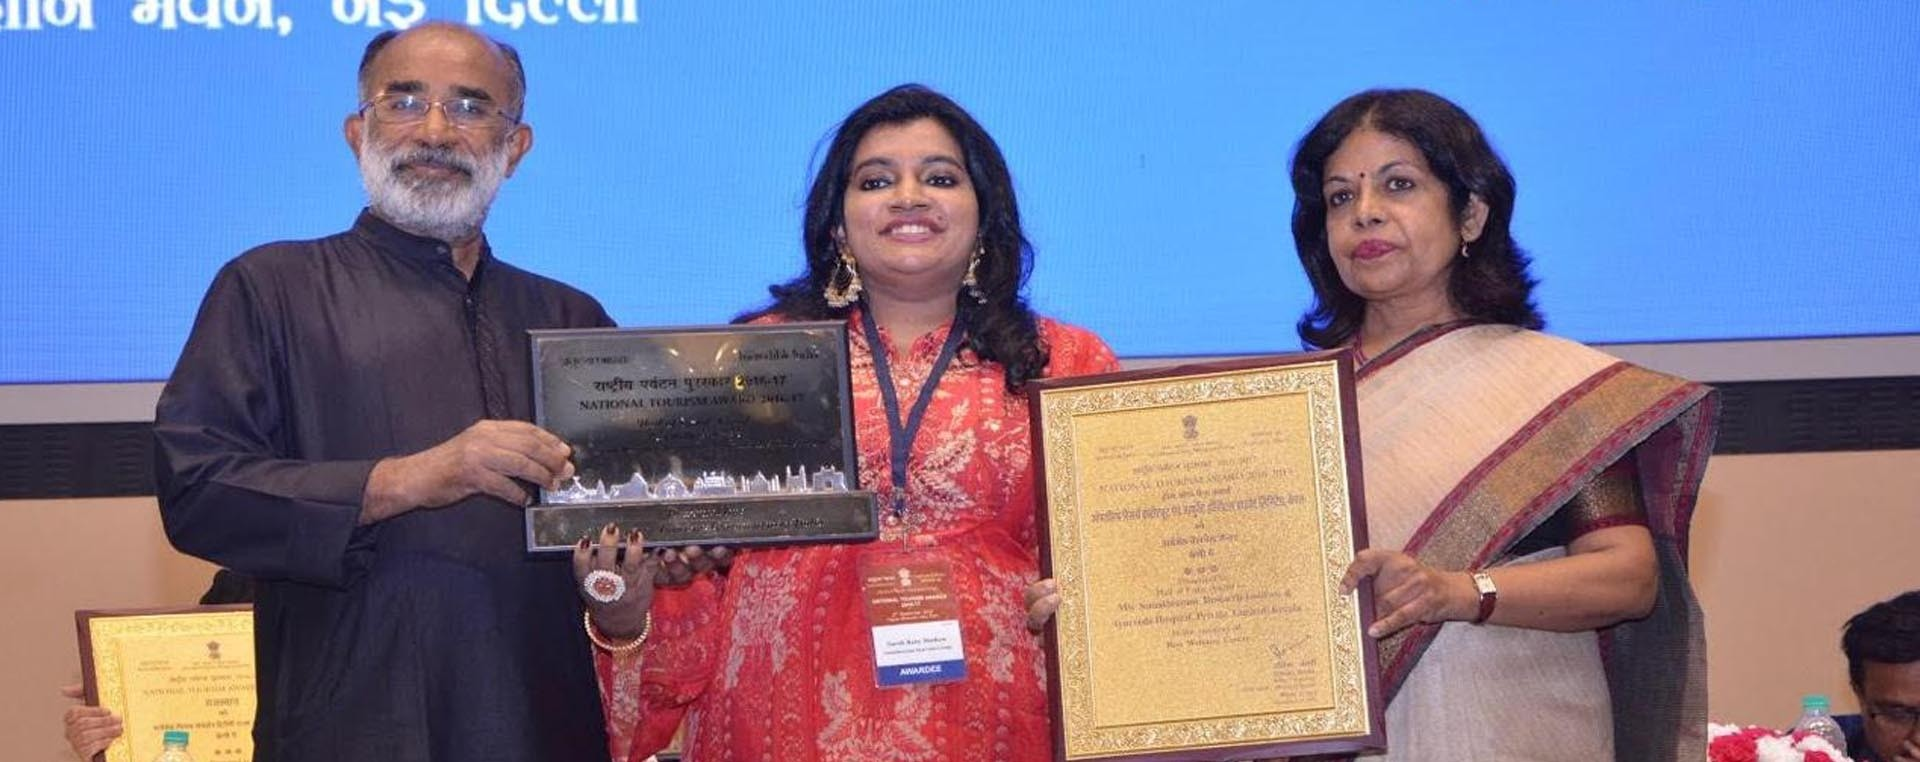 Mrs. Sarah Baby Mathew, Director of Somatheeram Ayurveda Group is receiving the National Tourism Award including 'HALL OF FAME' Award for the fourth time 'Best Ayurveda Wellness Centre' from honourable Union Minister of State for Tourism & Informatio